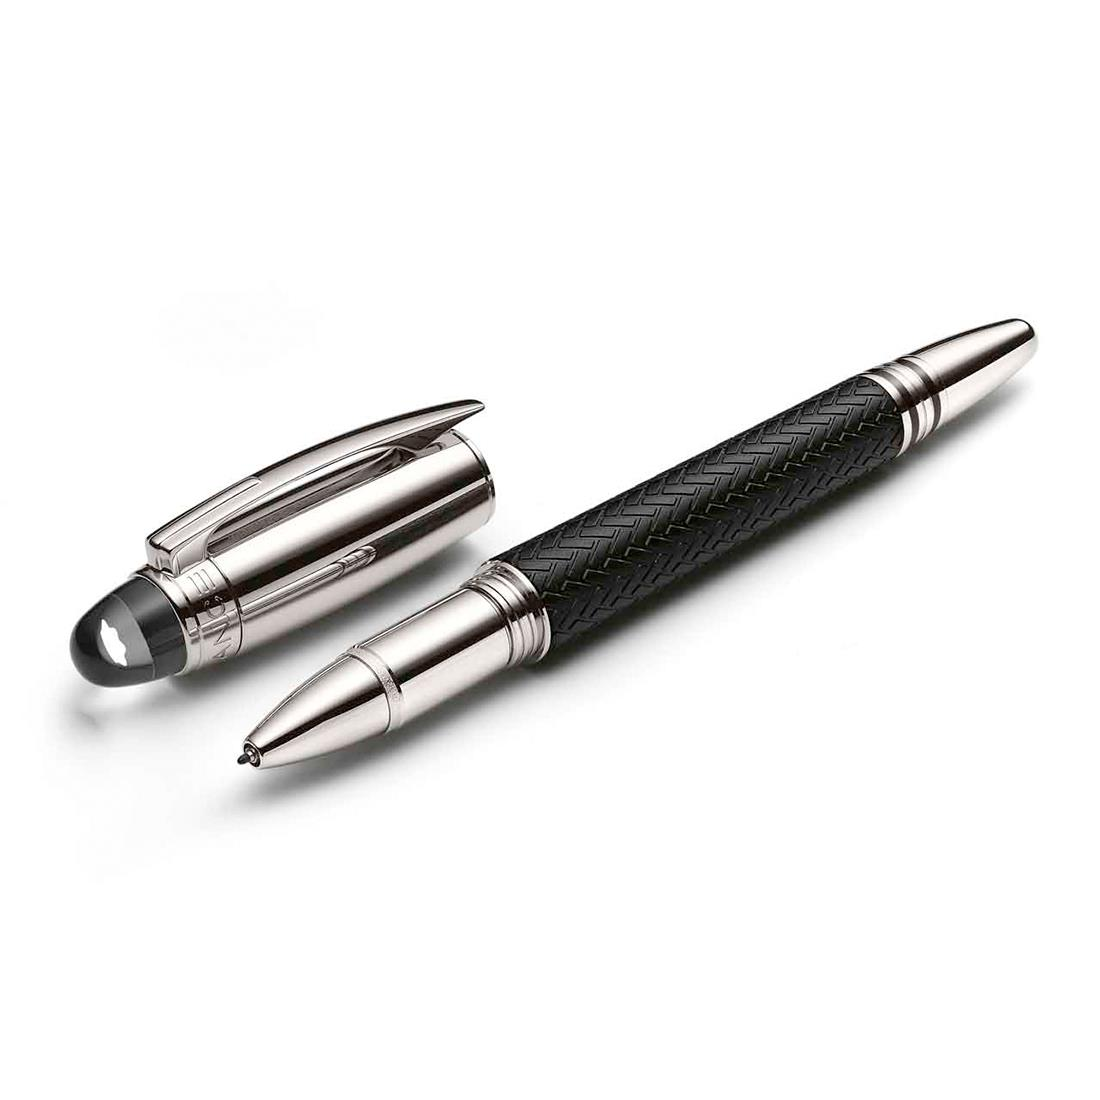 MONTBLANC FOR BMW ROLLERBALL PEN